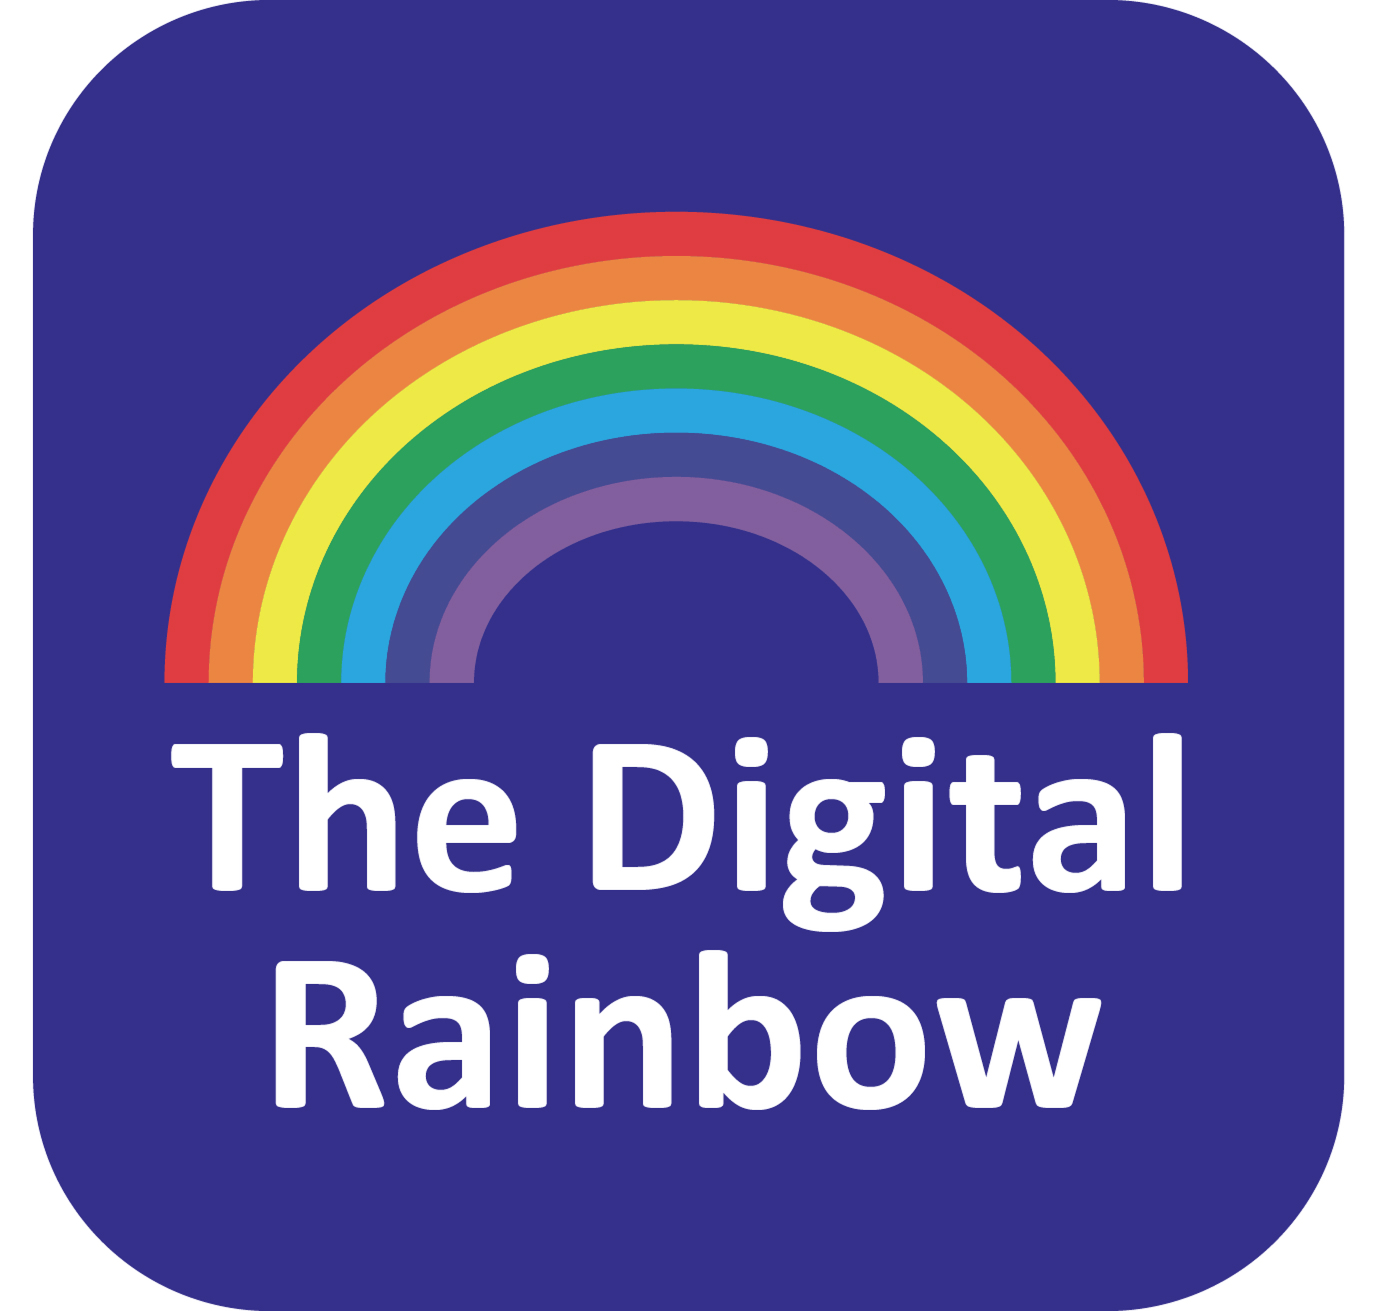 The Digital Rainbow Ltd